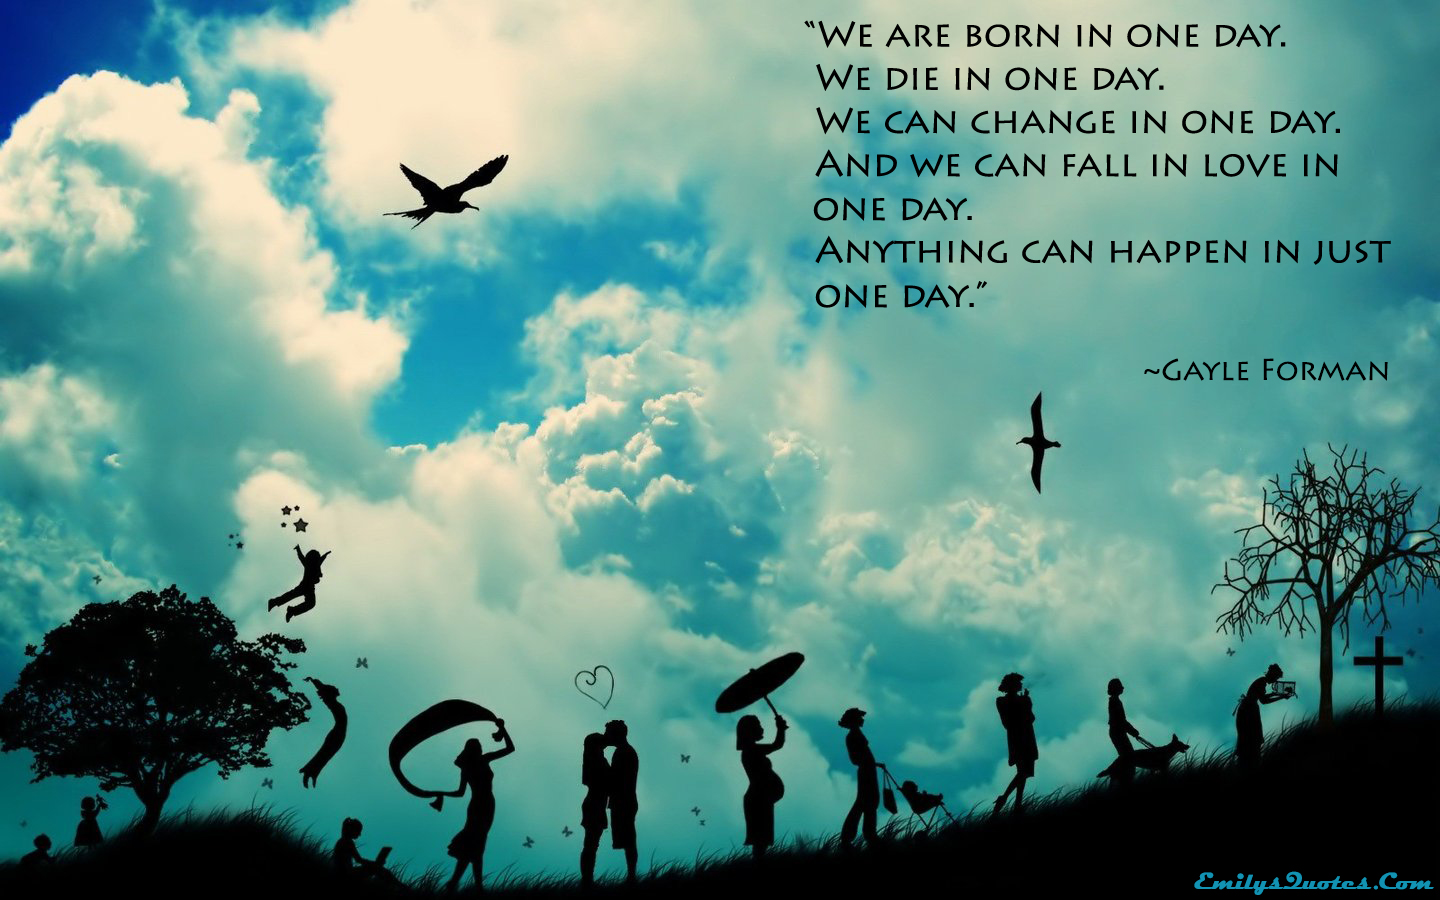 Great Quotes About Life And Death We Are Born In One Daywe Die In One Daywe Can Change In One